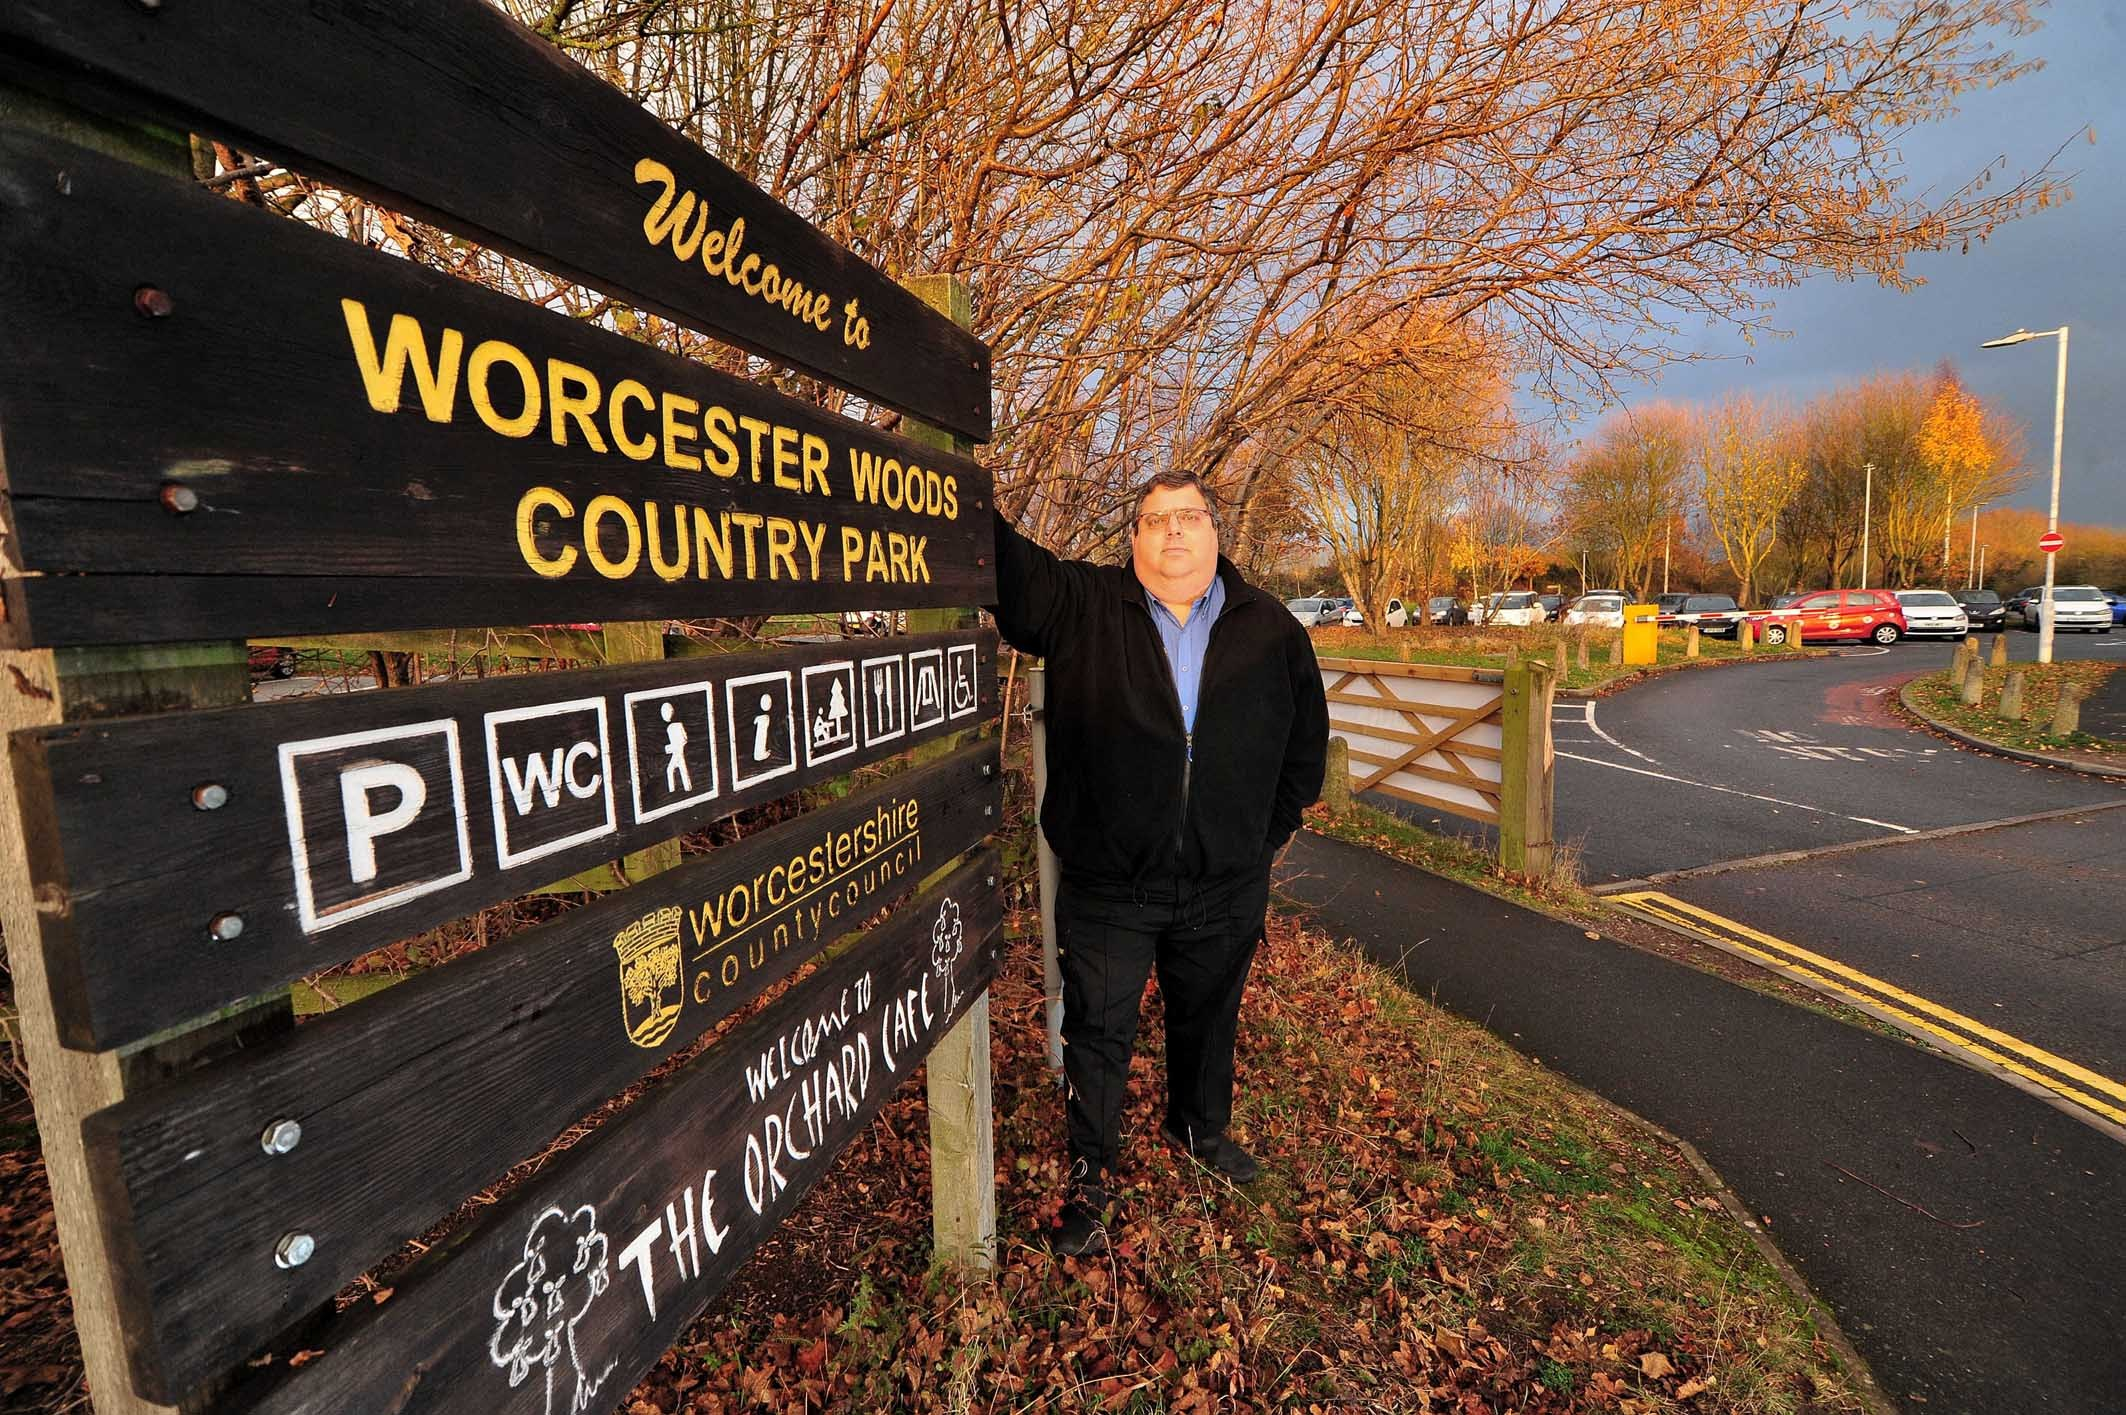 Parking fees plan for Worcester Woods Country Park approved | Worcester News